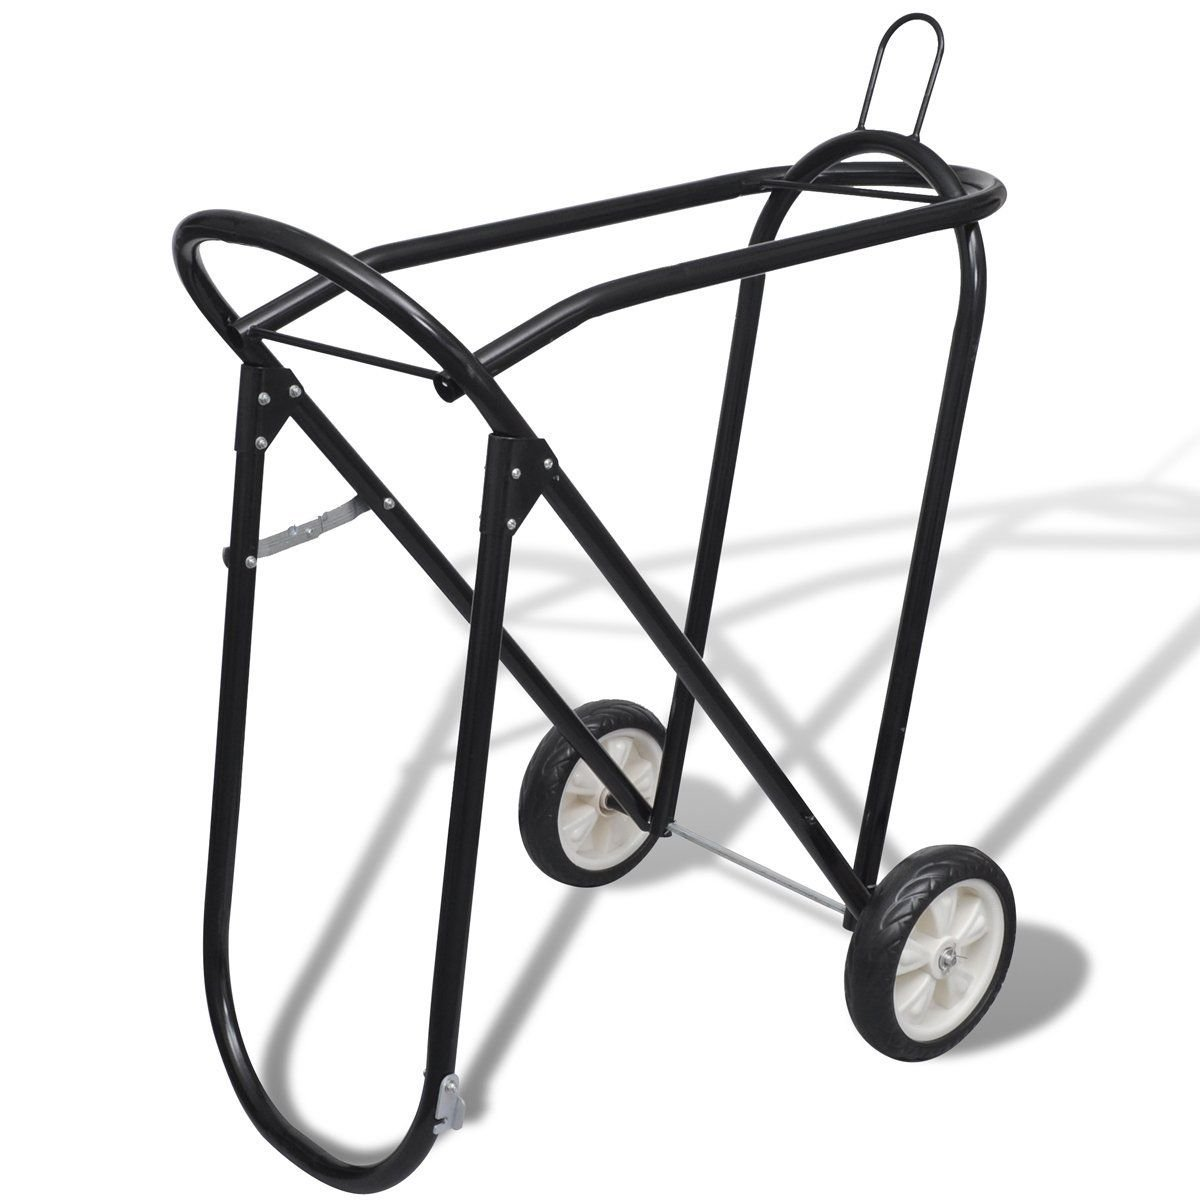 HomeSweet Saddle Stand with Wheels Rolling Tack Rack Collapsible Steel Foldable Saddle Rack with Wheels by HomeSweet